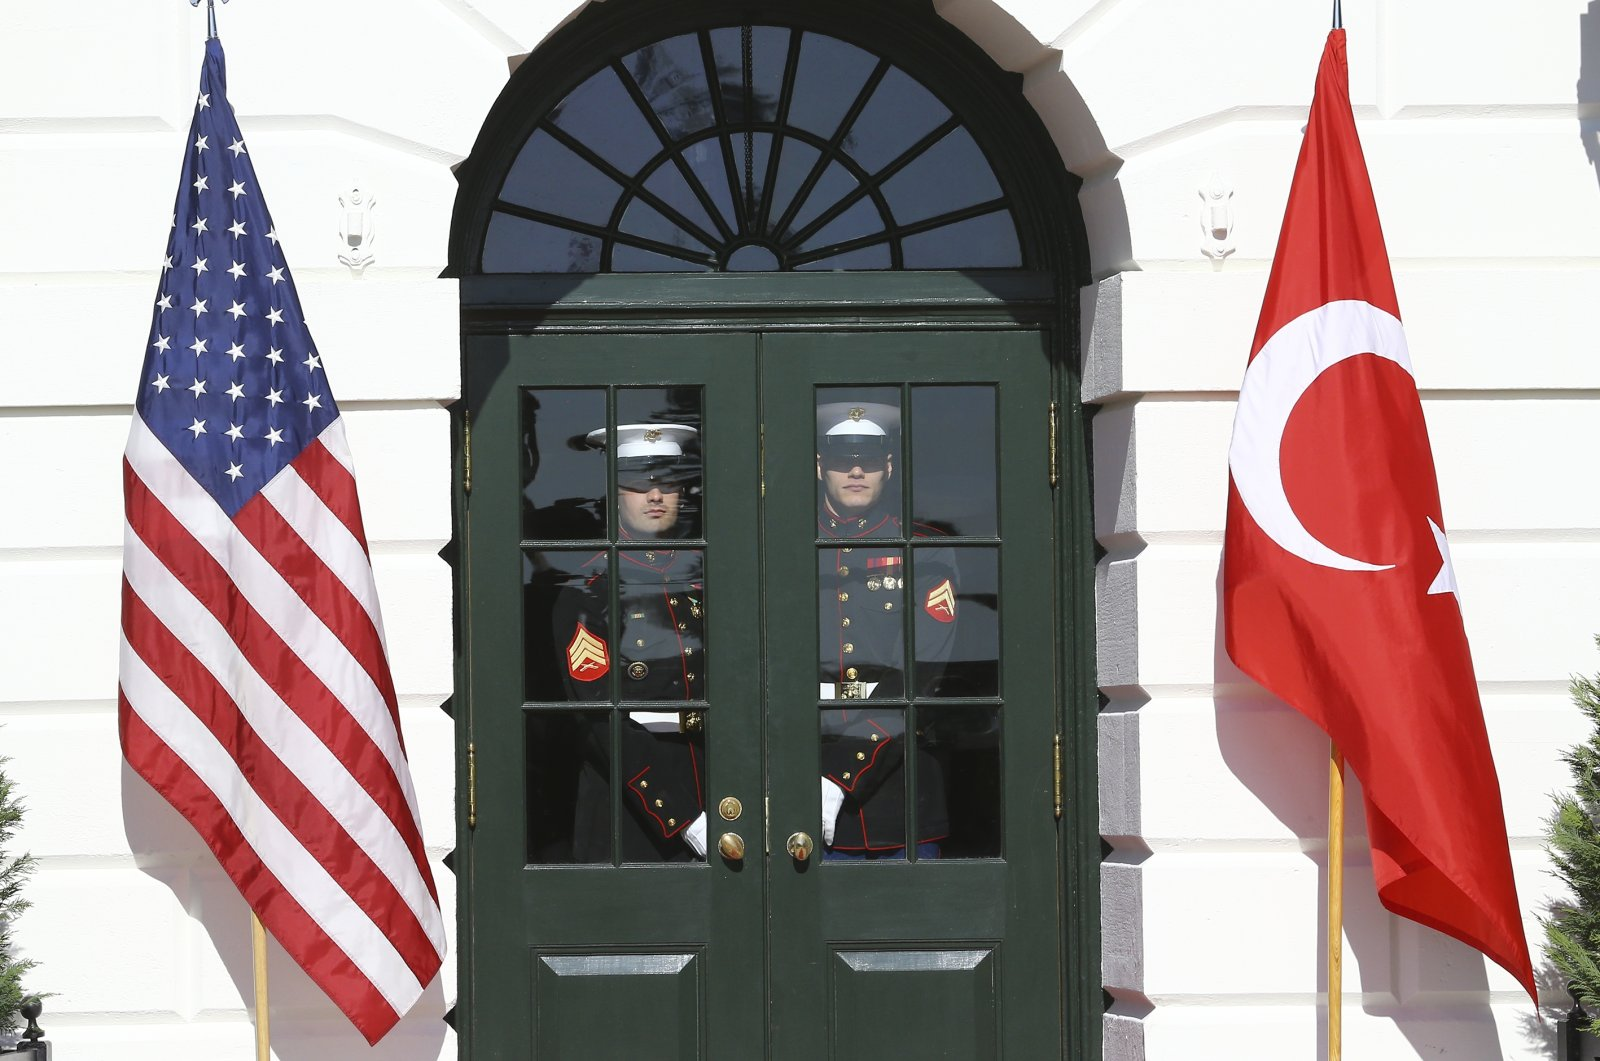 White House officials stand behind a glazed door prior to a meeting between President Recep Tayyip Erdoğan and U.S. President Donald Trump, Washington, D.C., the U.S., Nov. 13, 2019. (AA Photo)